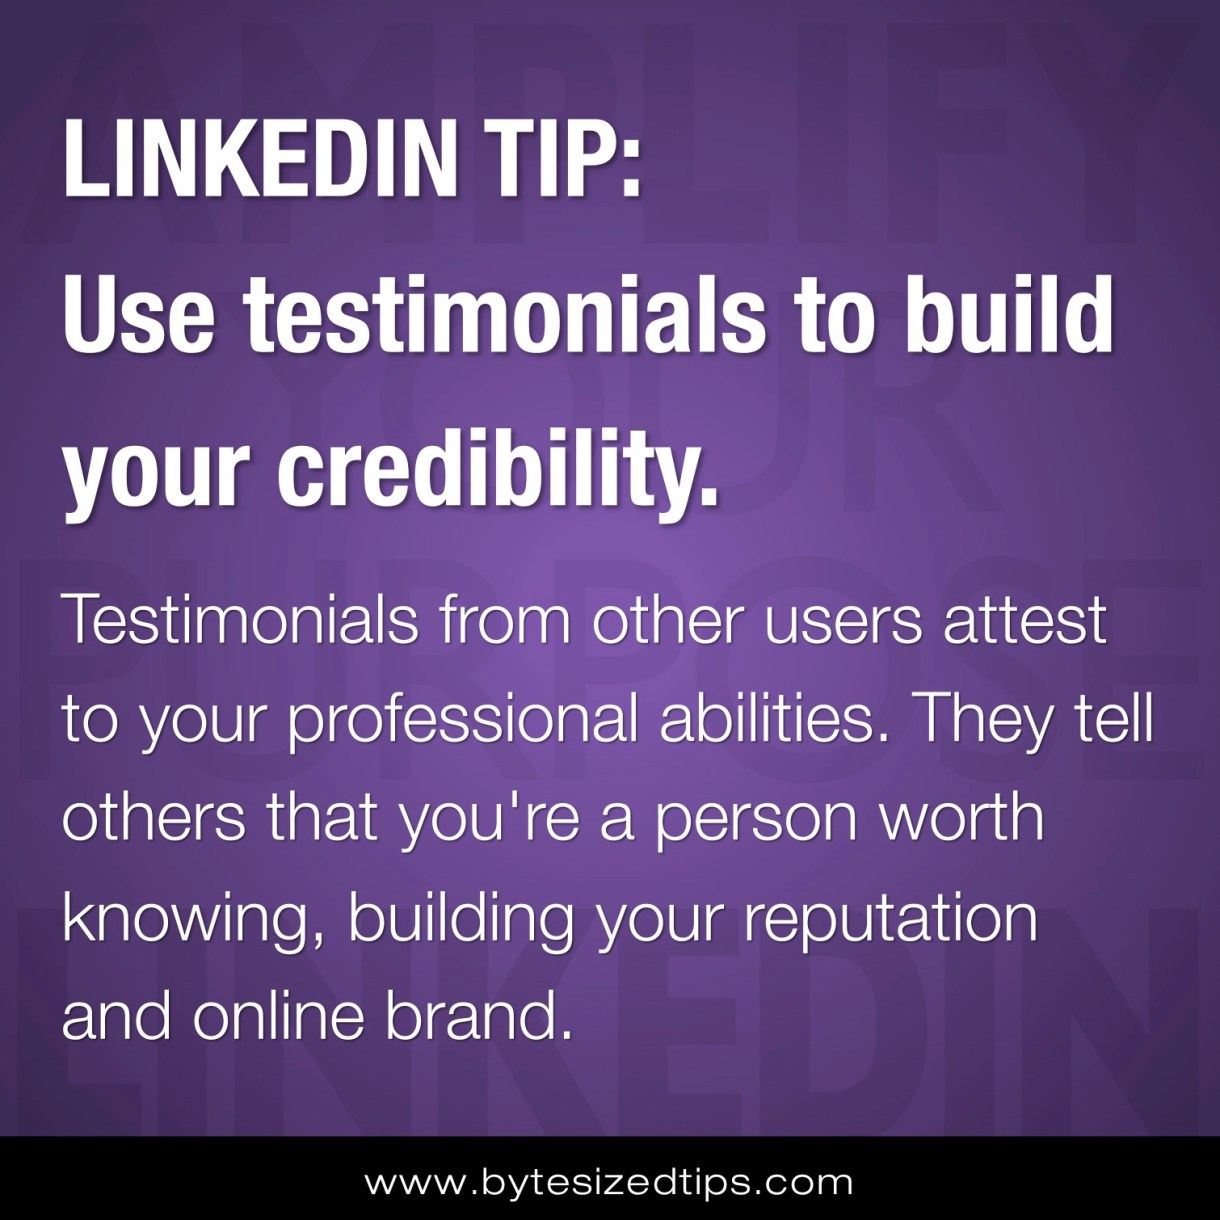 LINKEDIN TIP: Use testimonials to build your credibility.